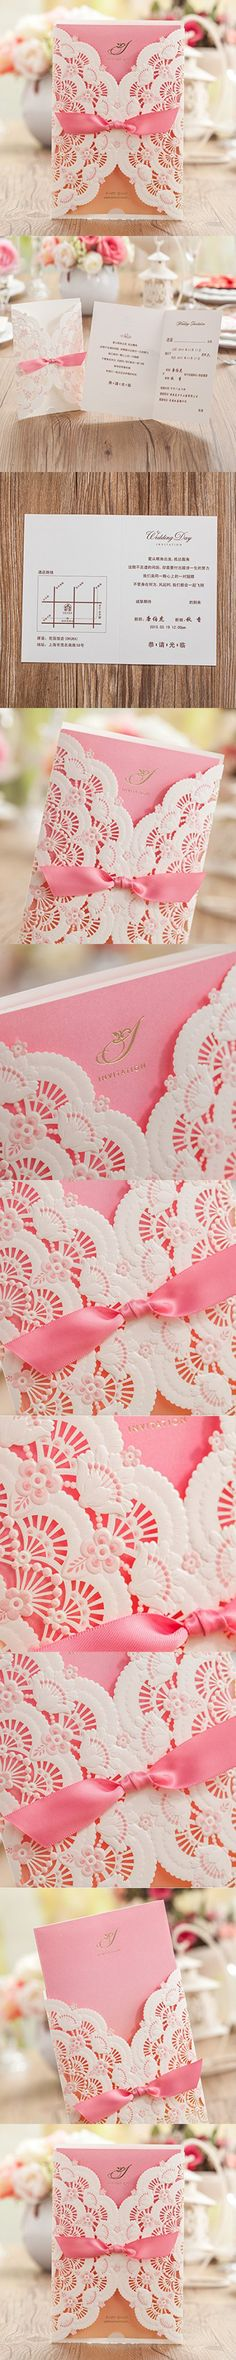 Wishmade 50x Laser Cut Lace Sleeve Wedding Invitations Cards Kits for Engagement Invitations Bridal Shower Birthday Anniversary Quinceanera Paper Cardstock with Lace and Hollow Flowers(Set of 50pcs)